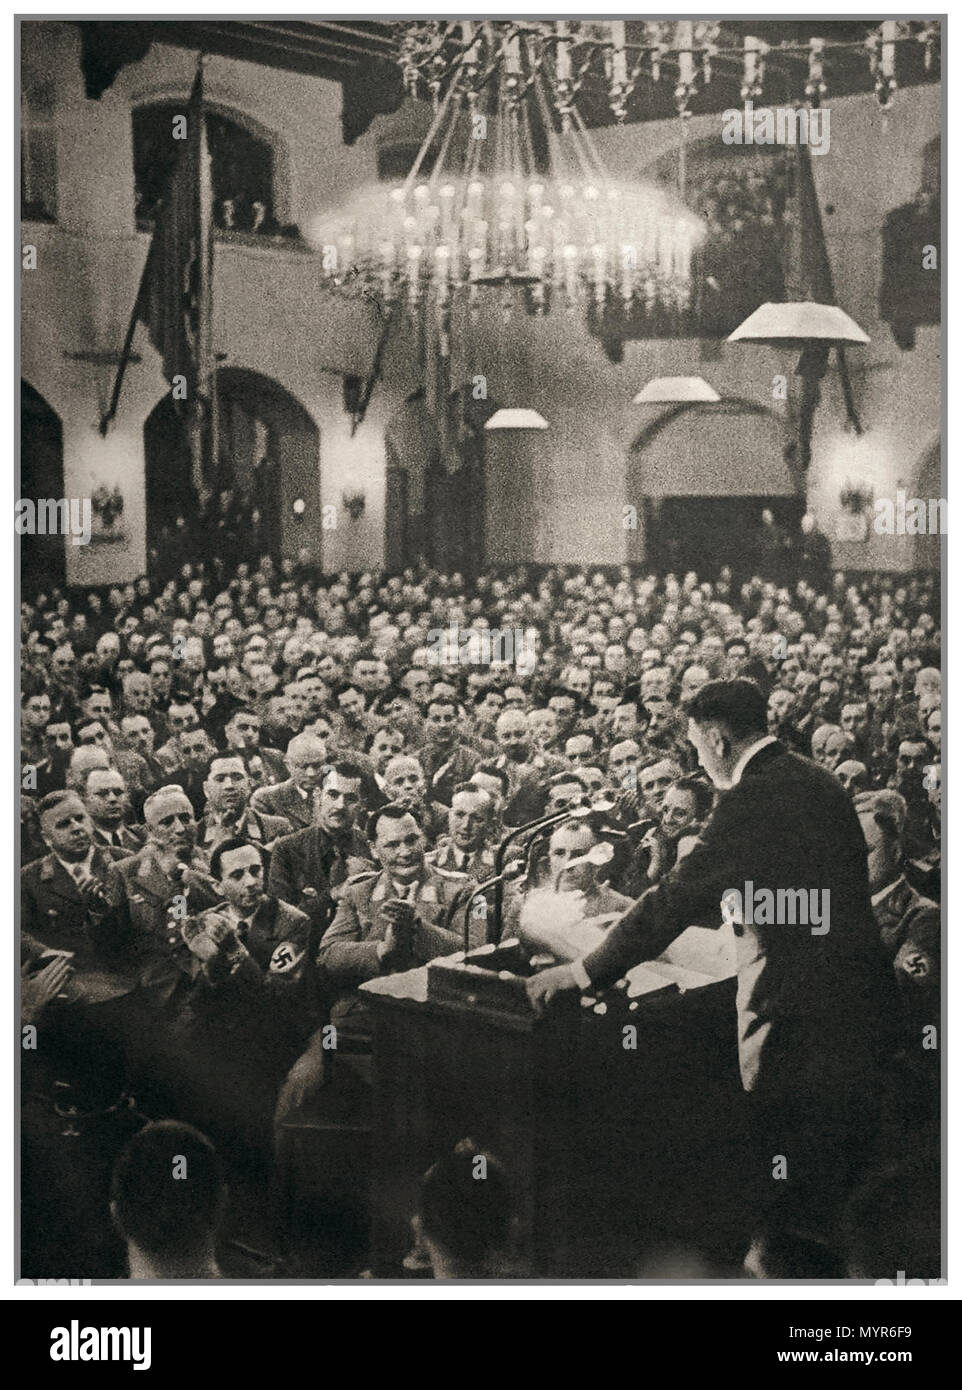 Vintage B&W image reportage Adolf Hitler giving a speech in Munich, with Goebbels wearing a swastika armband and Goering in the front row  November 1930 - Stock Image